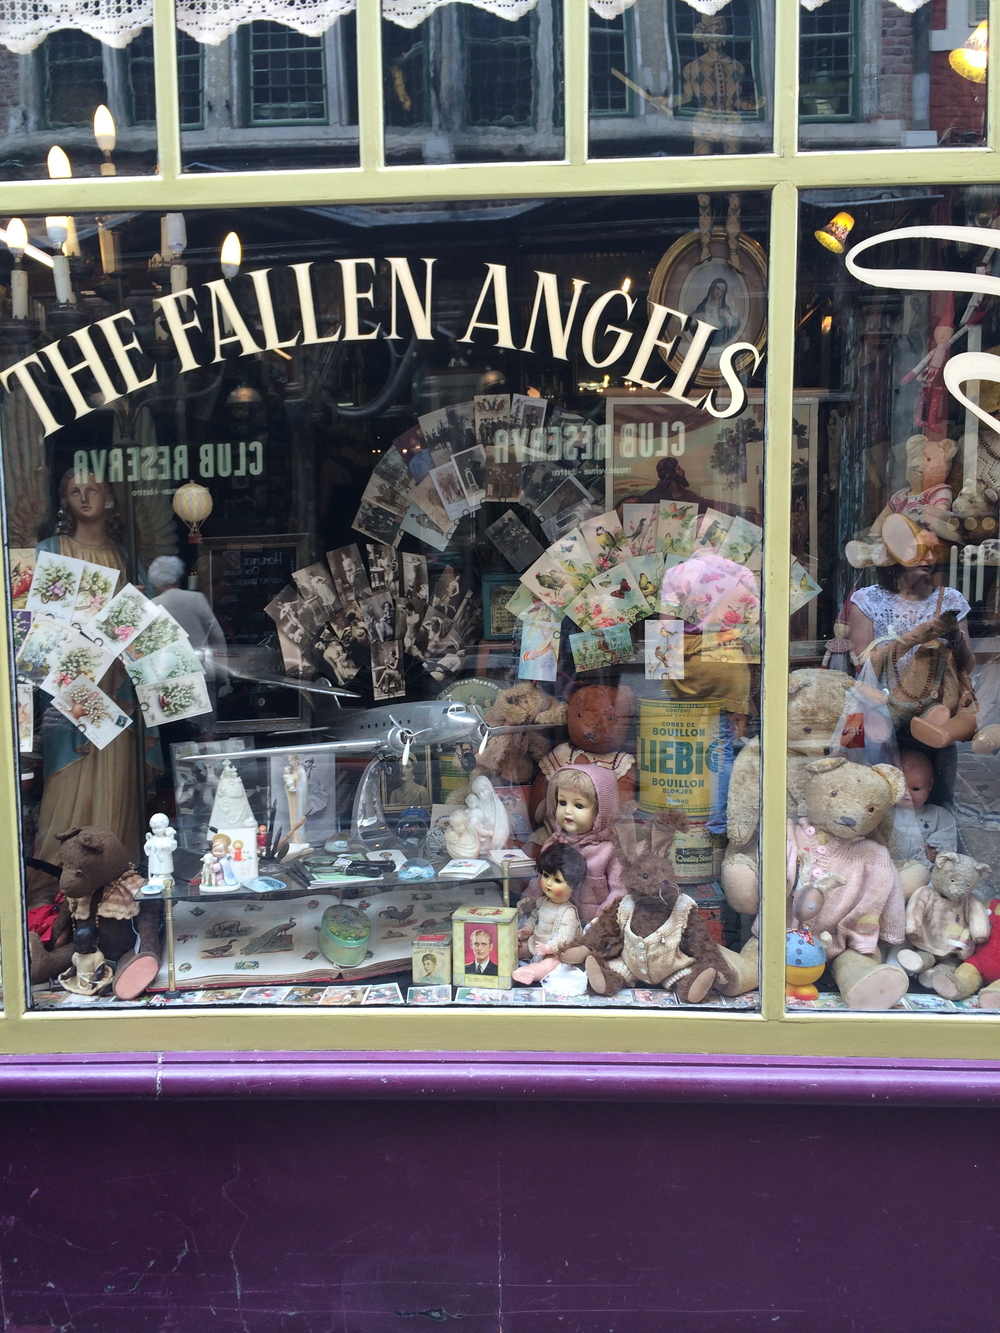 The Fallen Angels. pretty childrens shop in Ghent, Belgium